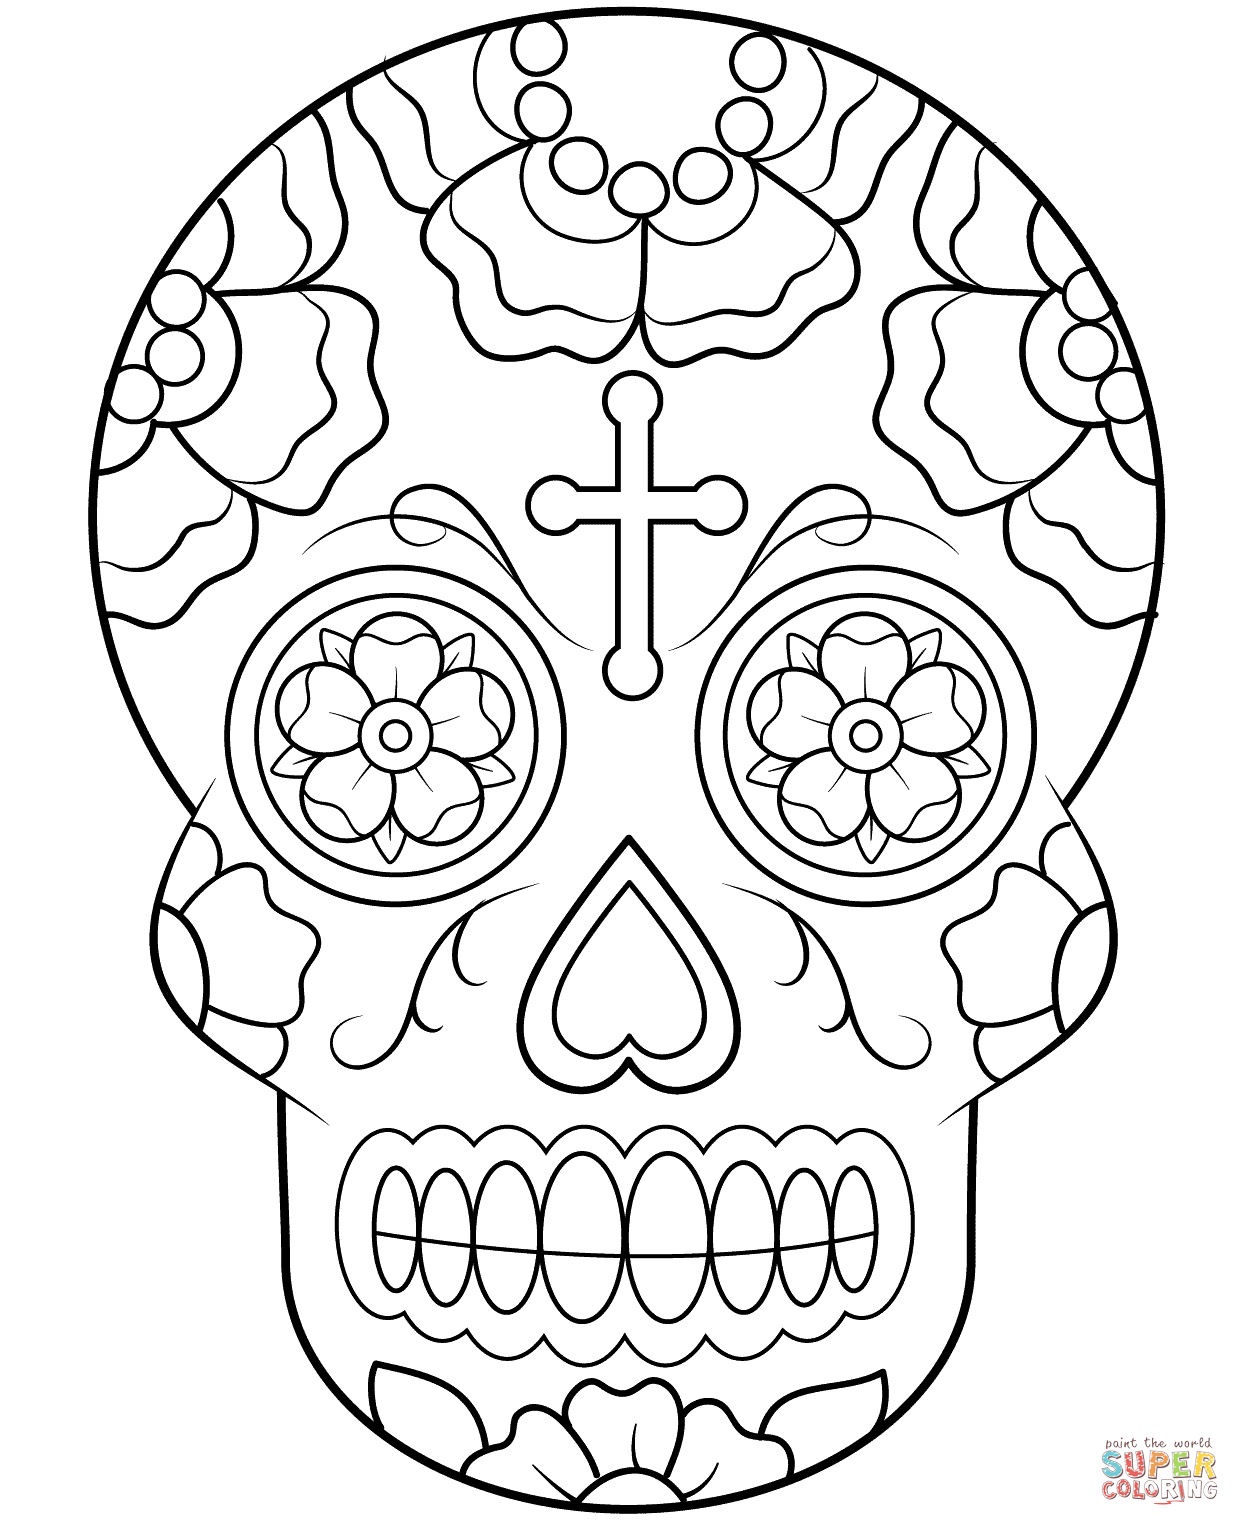 Drawn skull coloring page Free the Calavera pages coloring